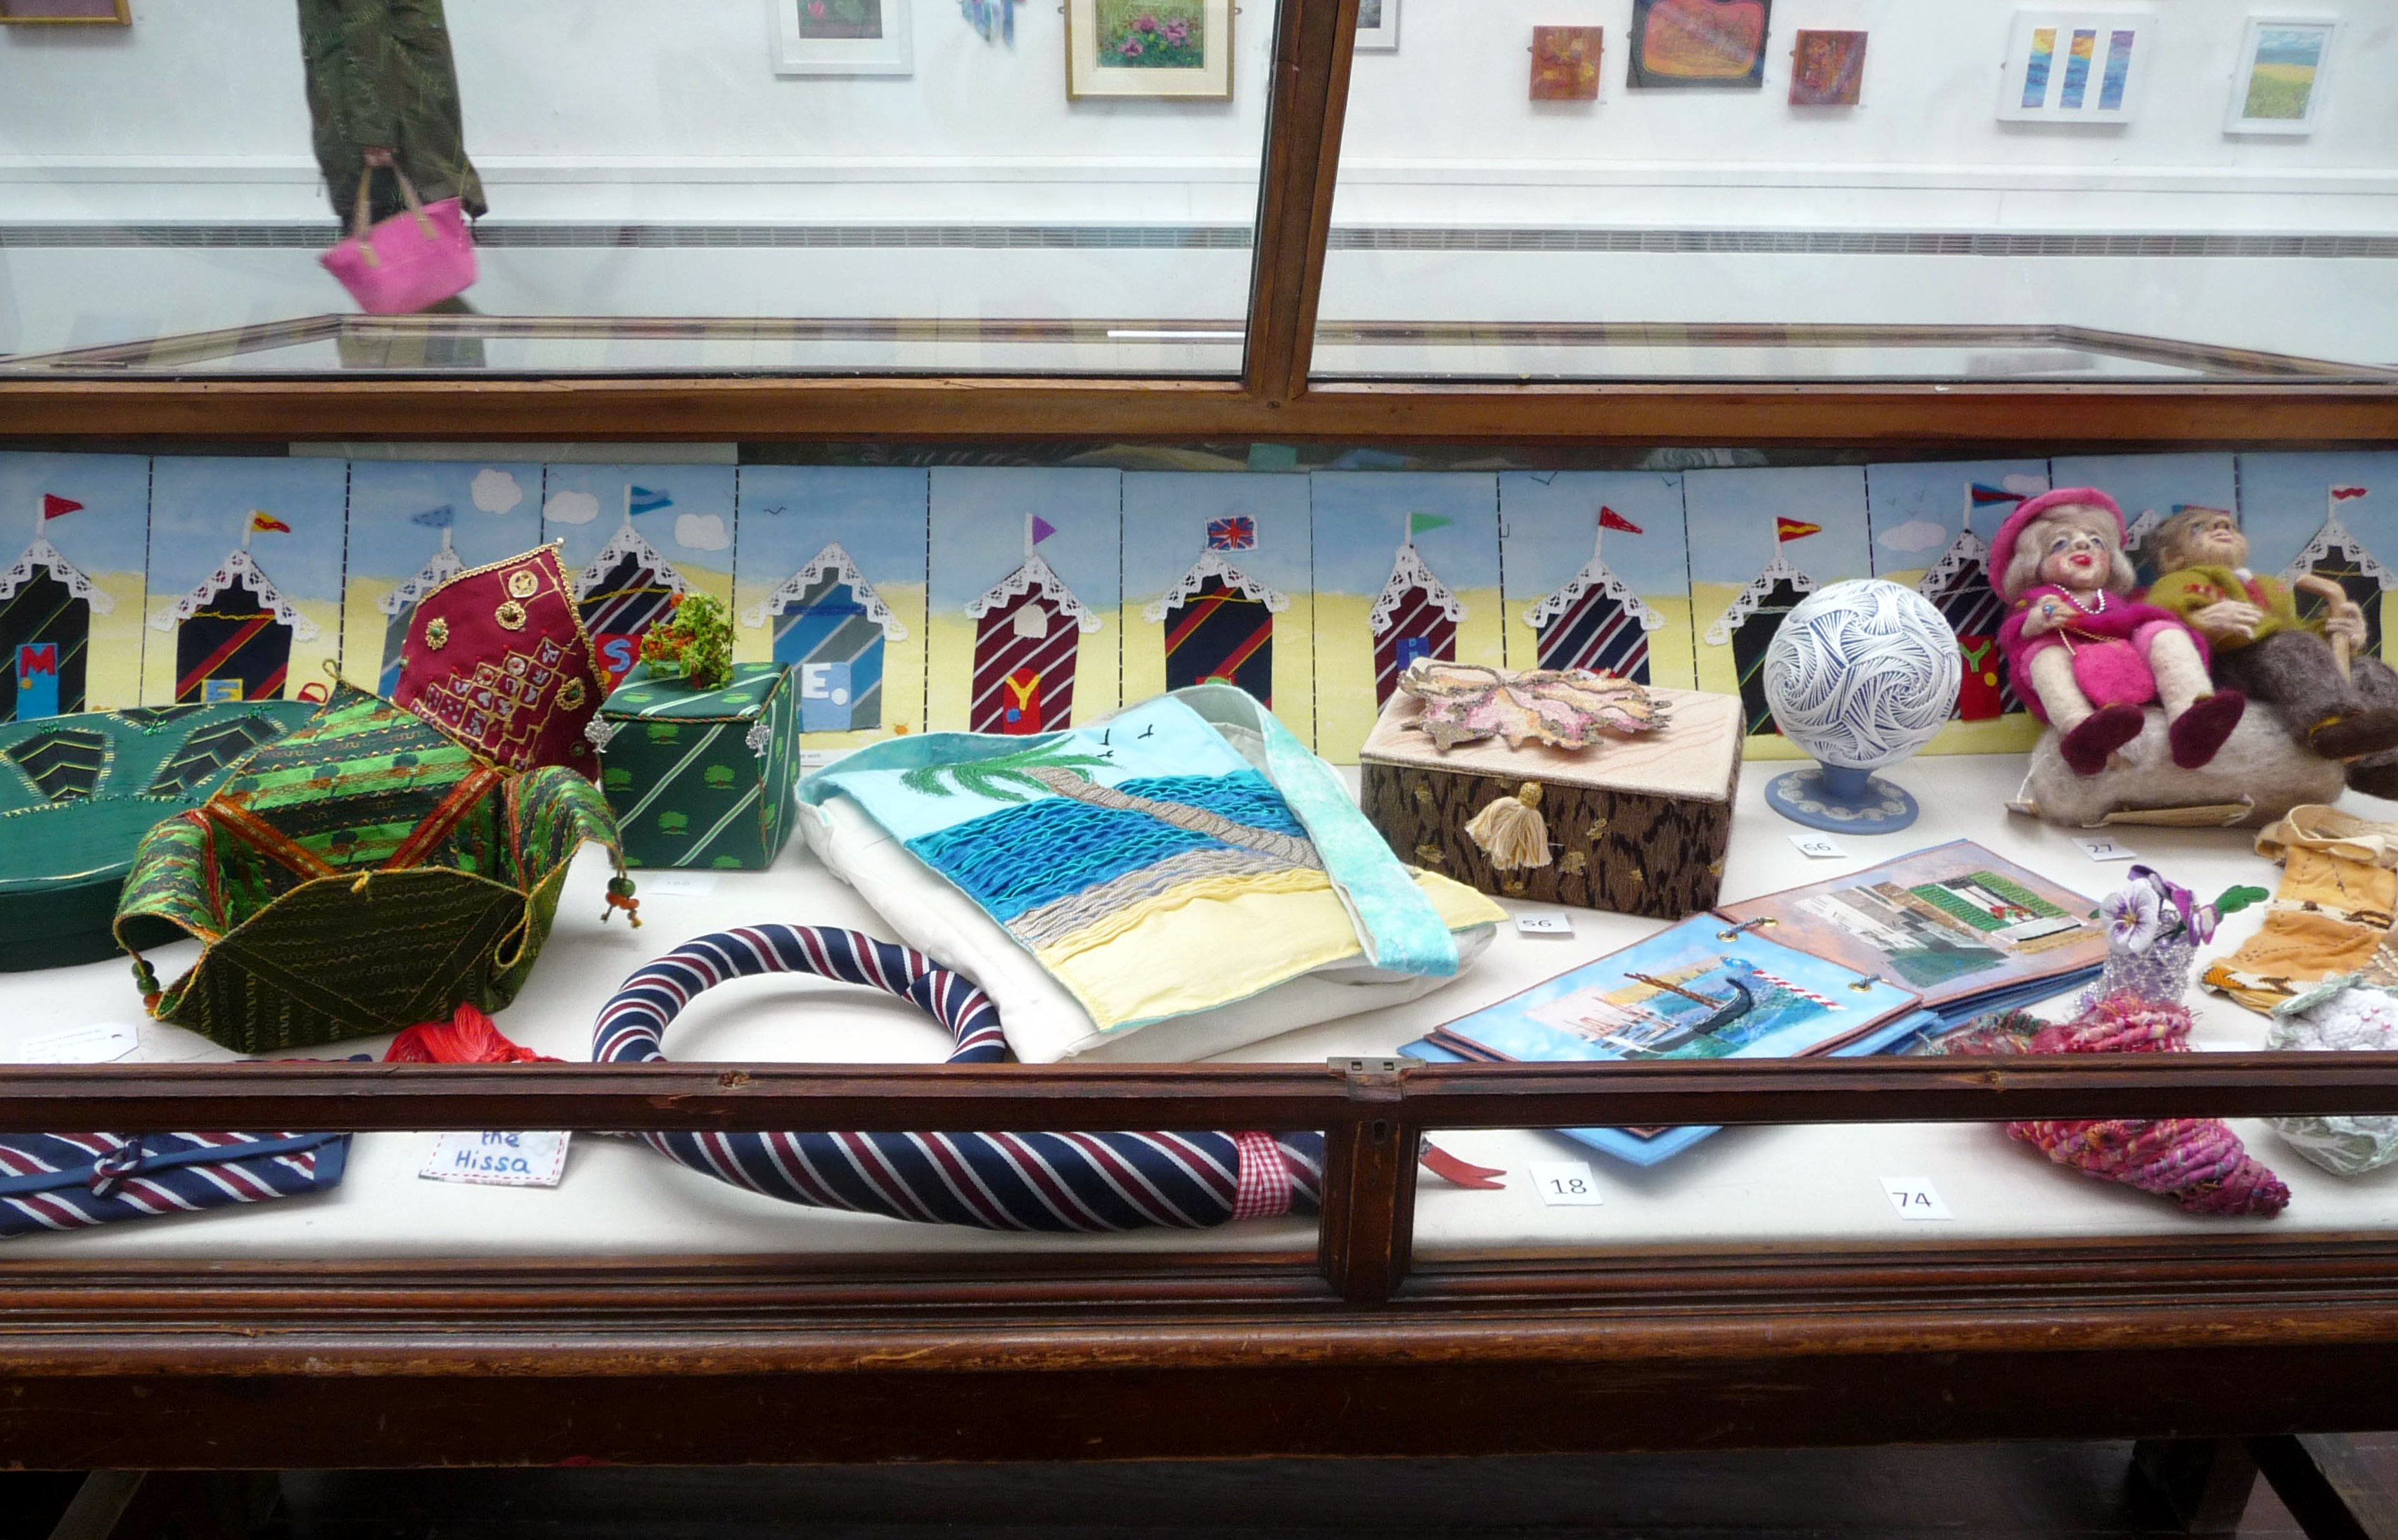 cabinet in Storey Gallery with BEACH HUTS by Merseyside YE Group, hand stitched concertina panel